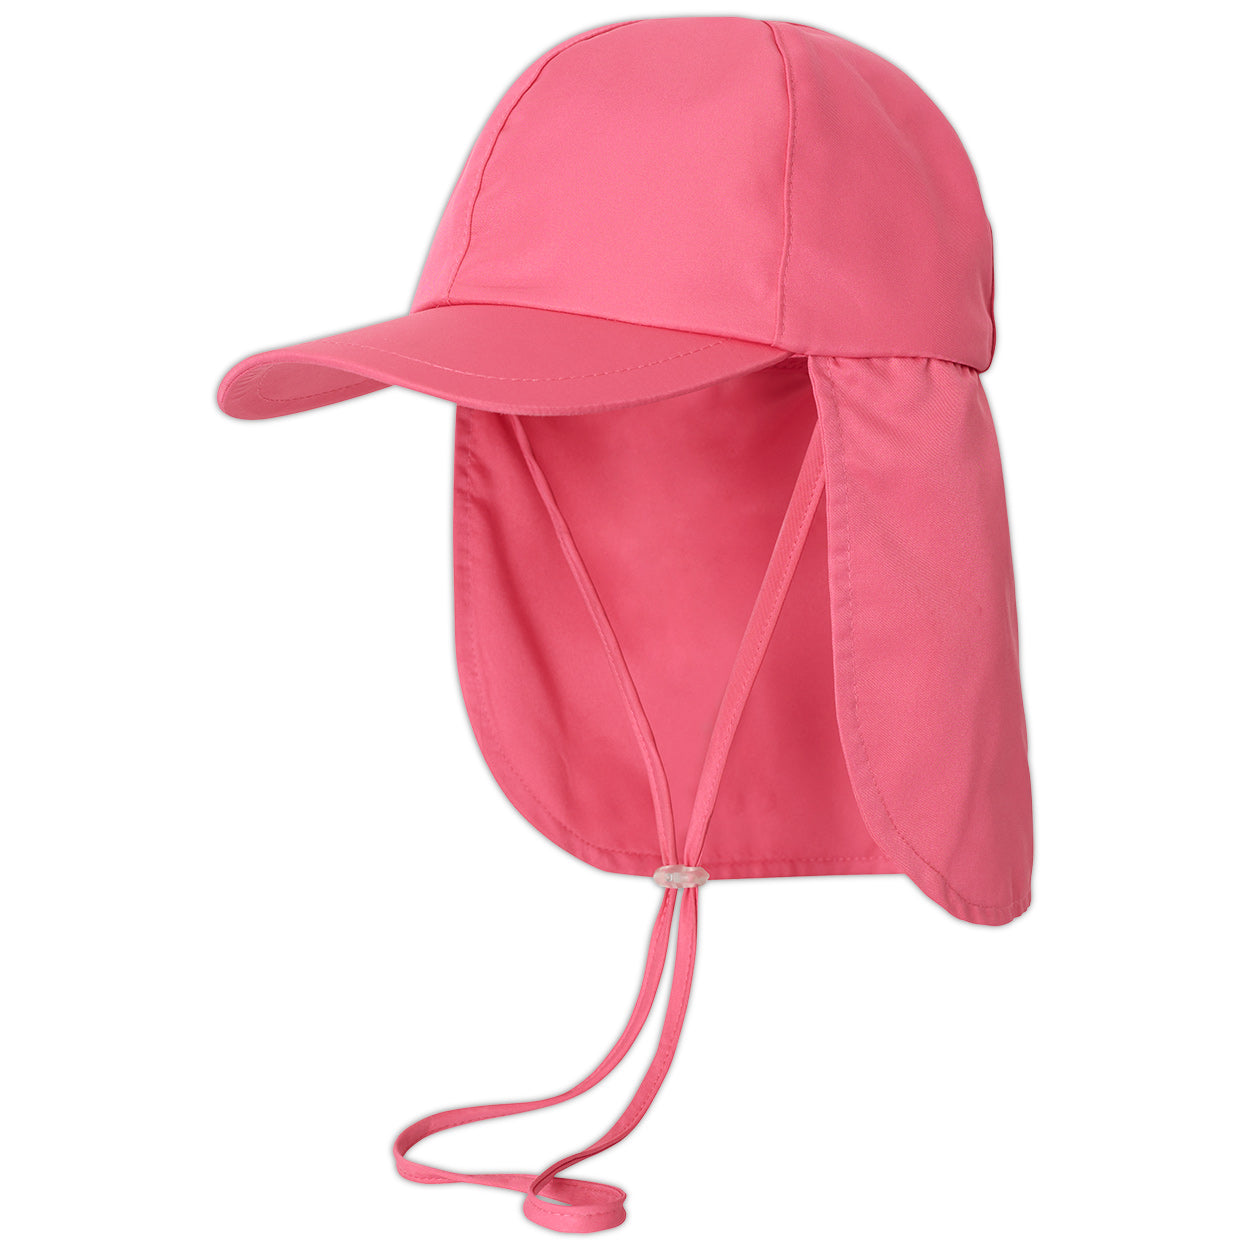 Girls pink legionnaire sun hat upf 50 size s xl left view sunpoplife